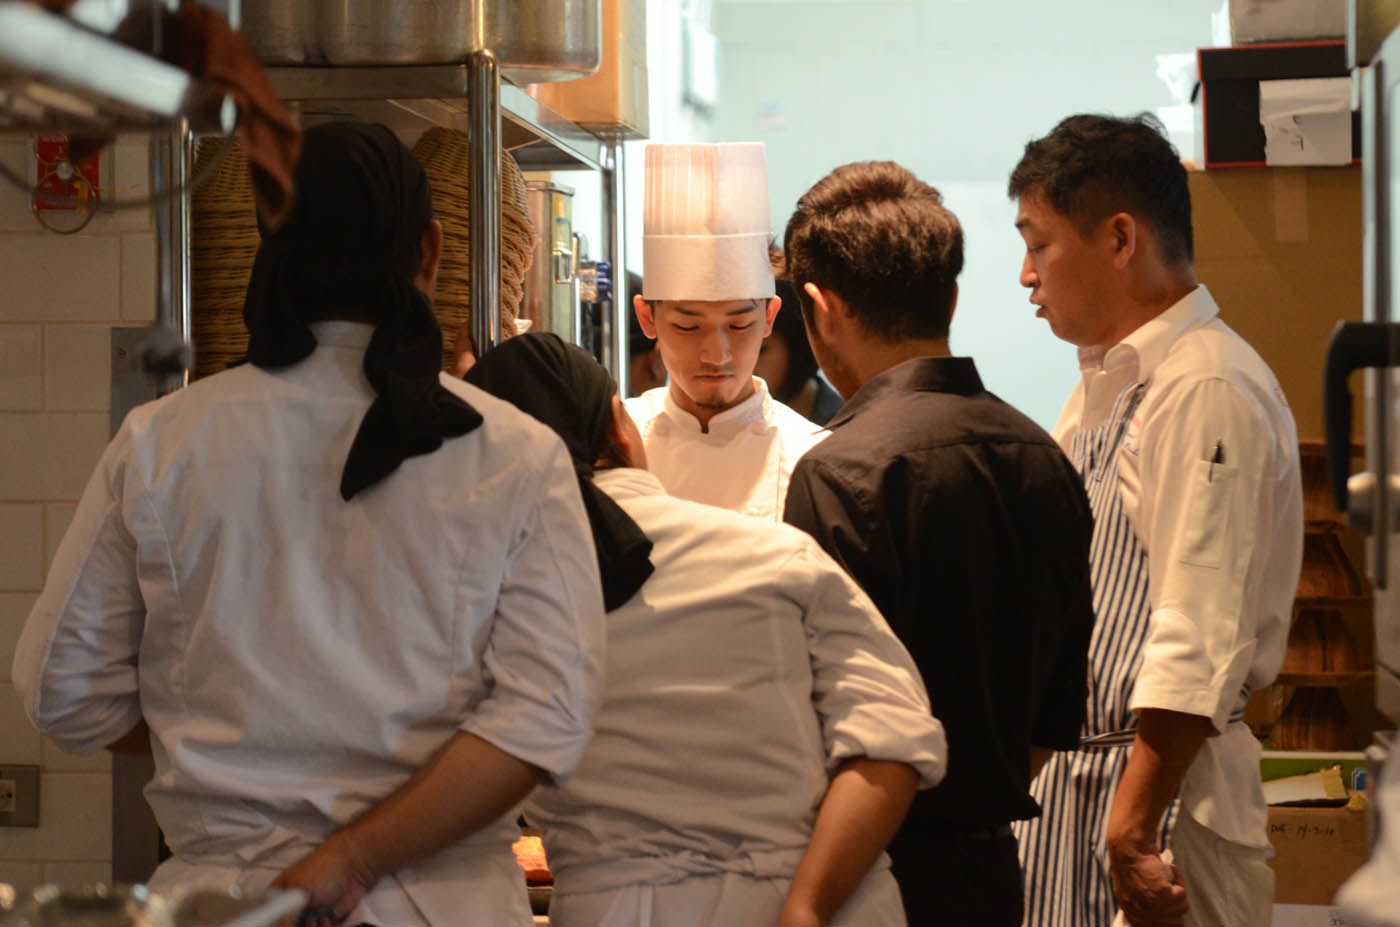 IN FULL FORCE. The local kitchen staff is being trained by Japanese chefs to ensure only the best dishes for Metro Manila customers